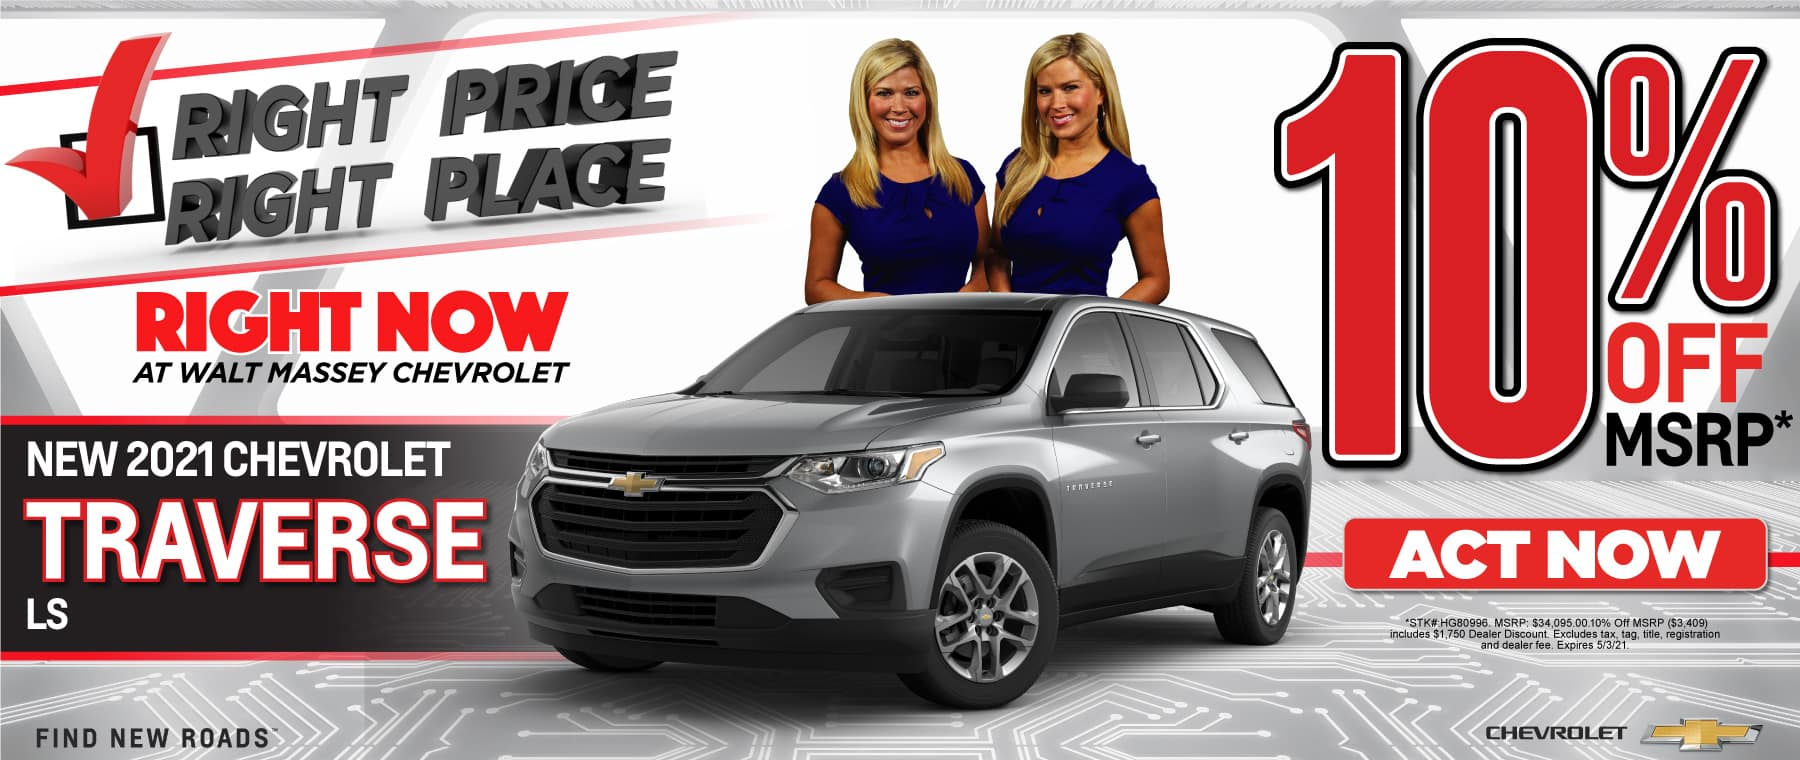 New 2021 Chevy Traverse - 10% off msrp - Act Now